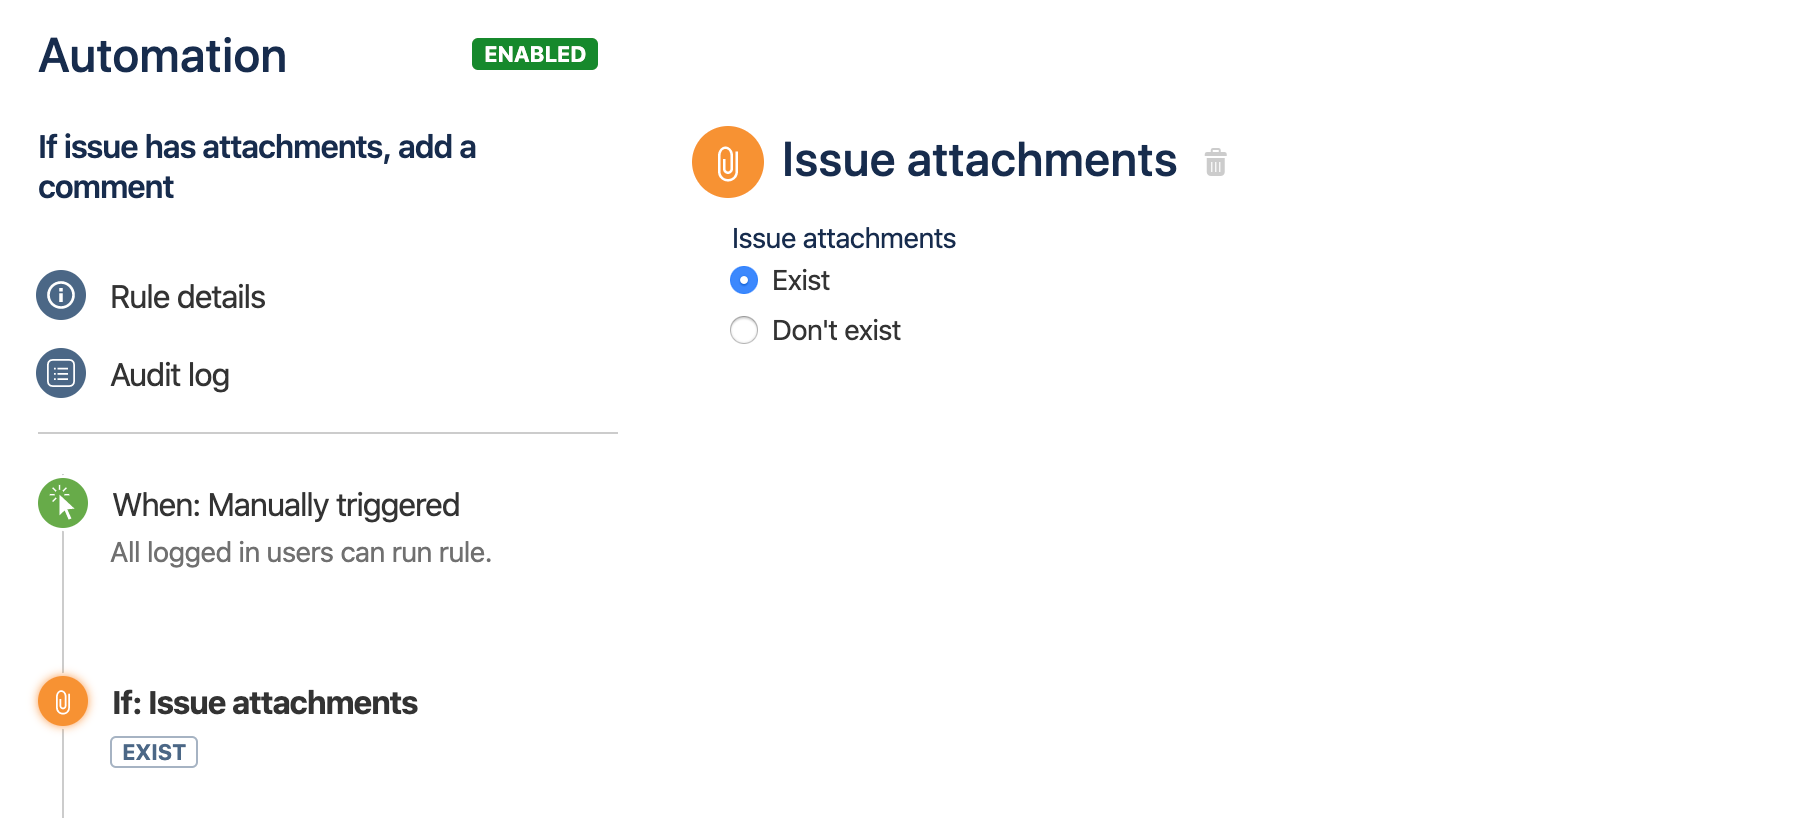 The fields available on the Issue attachments condition